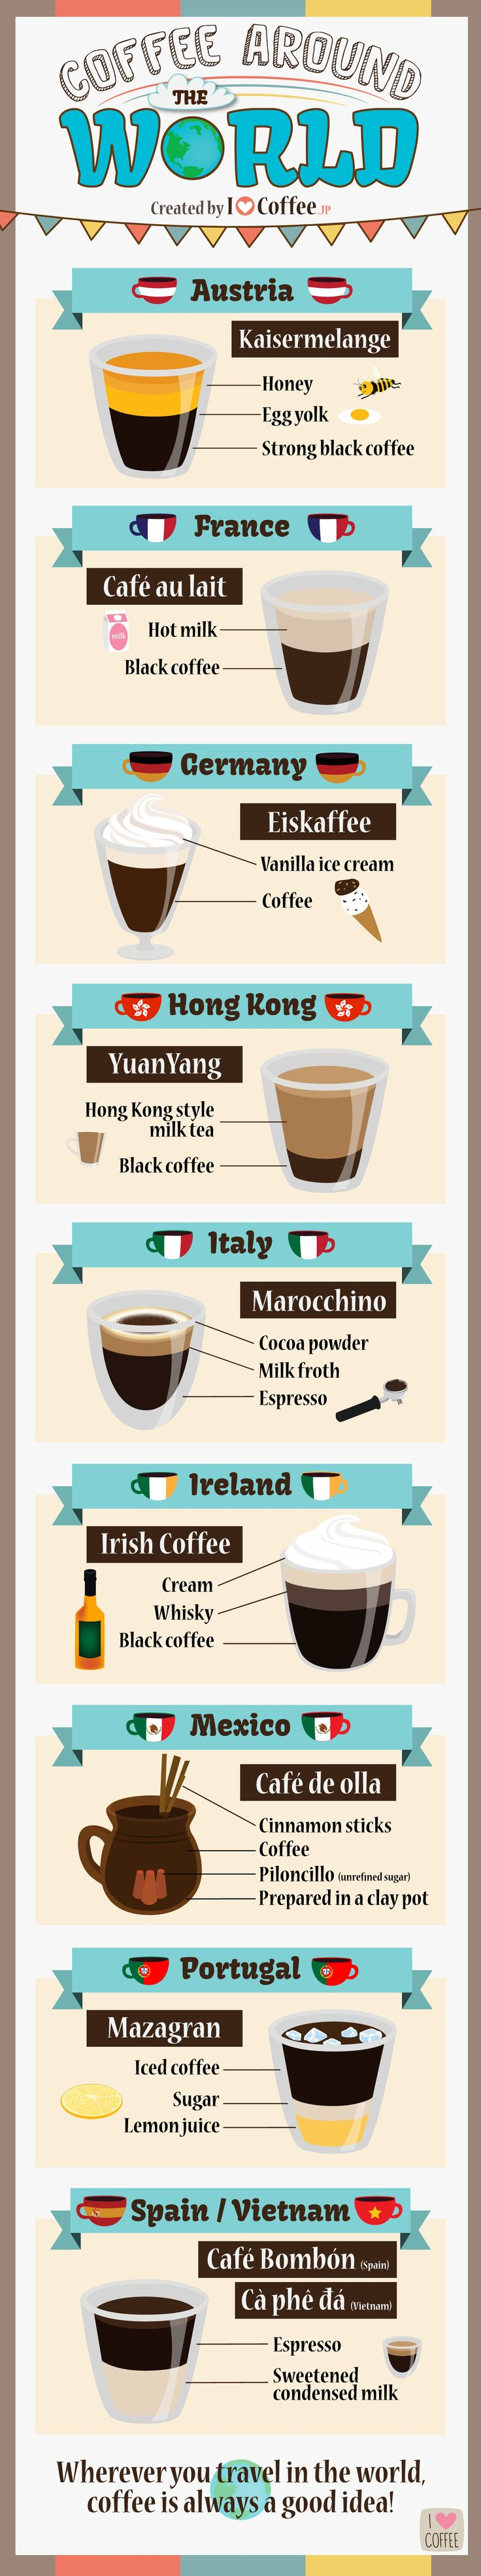 Coffee Around the World - I Love Coffee #Infographic #Infografía